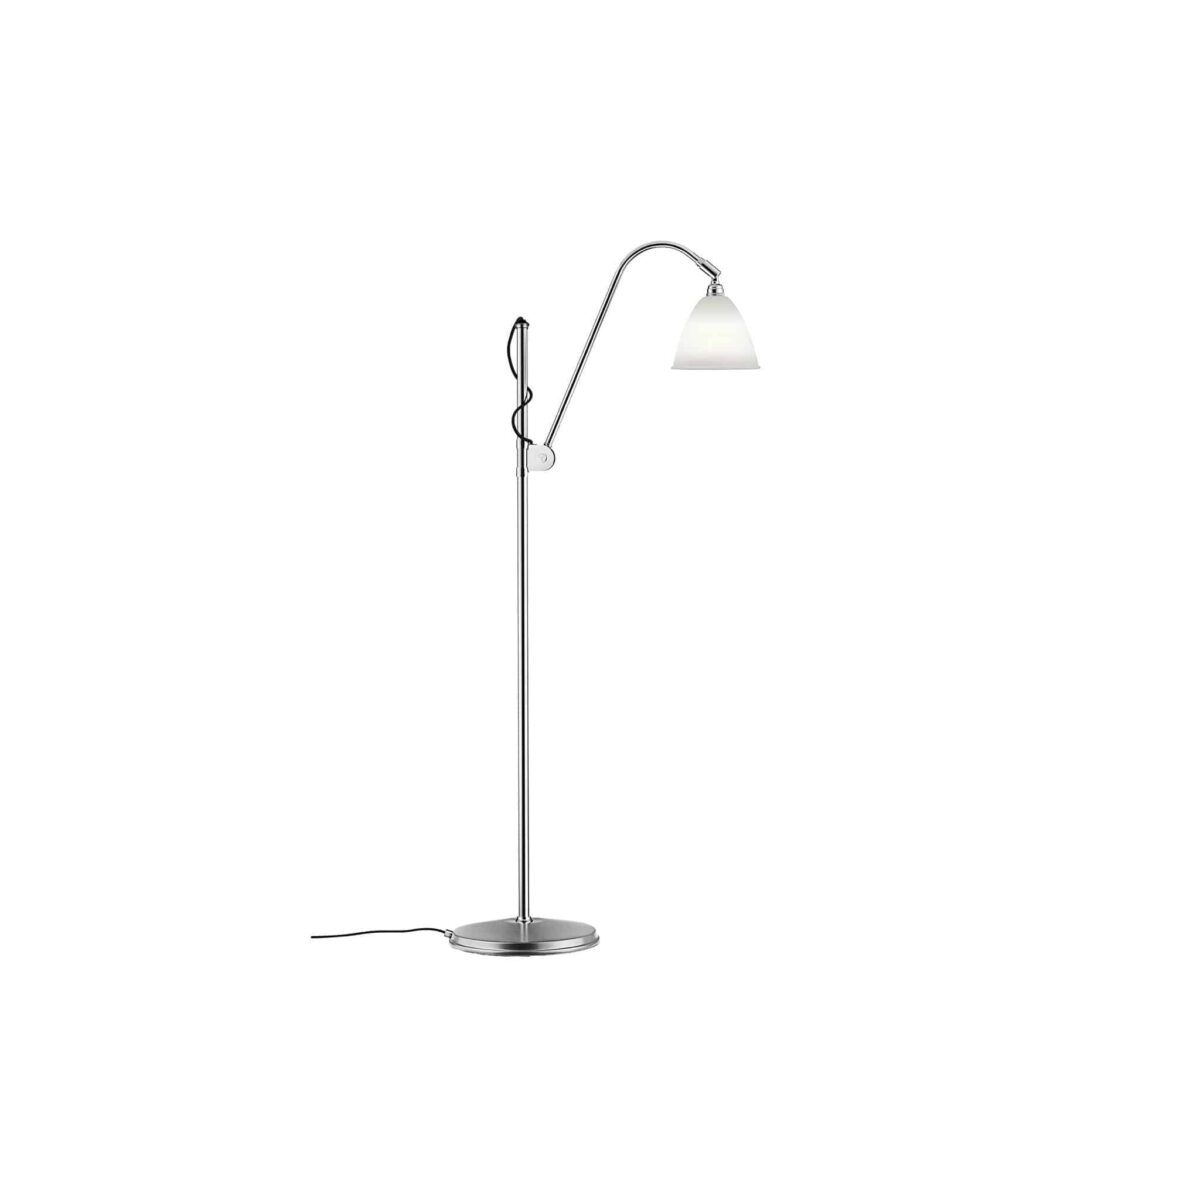 gubi-bestlite-floor-lamp-BL3-S-all-chrome-translucent-bone-china-001